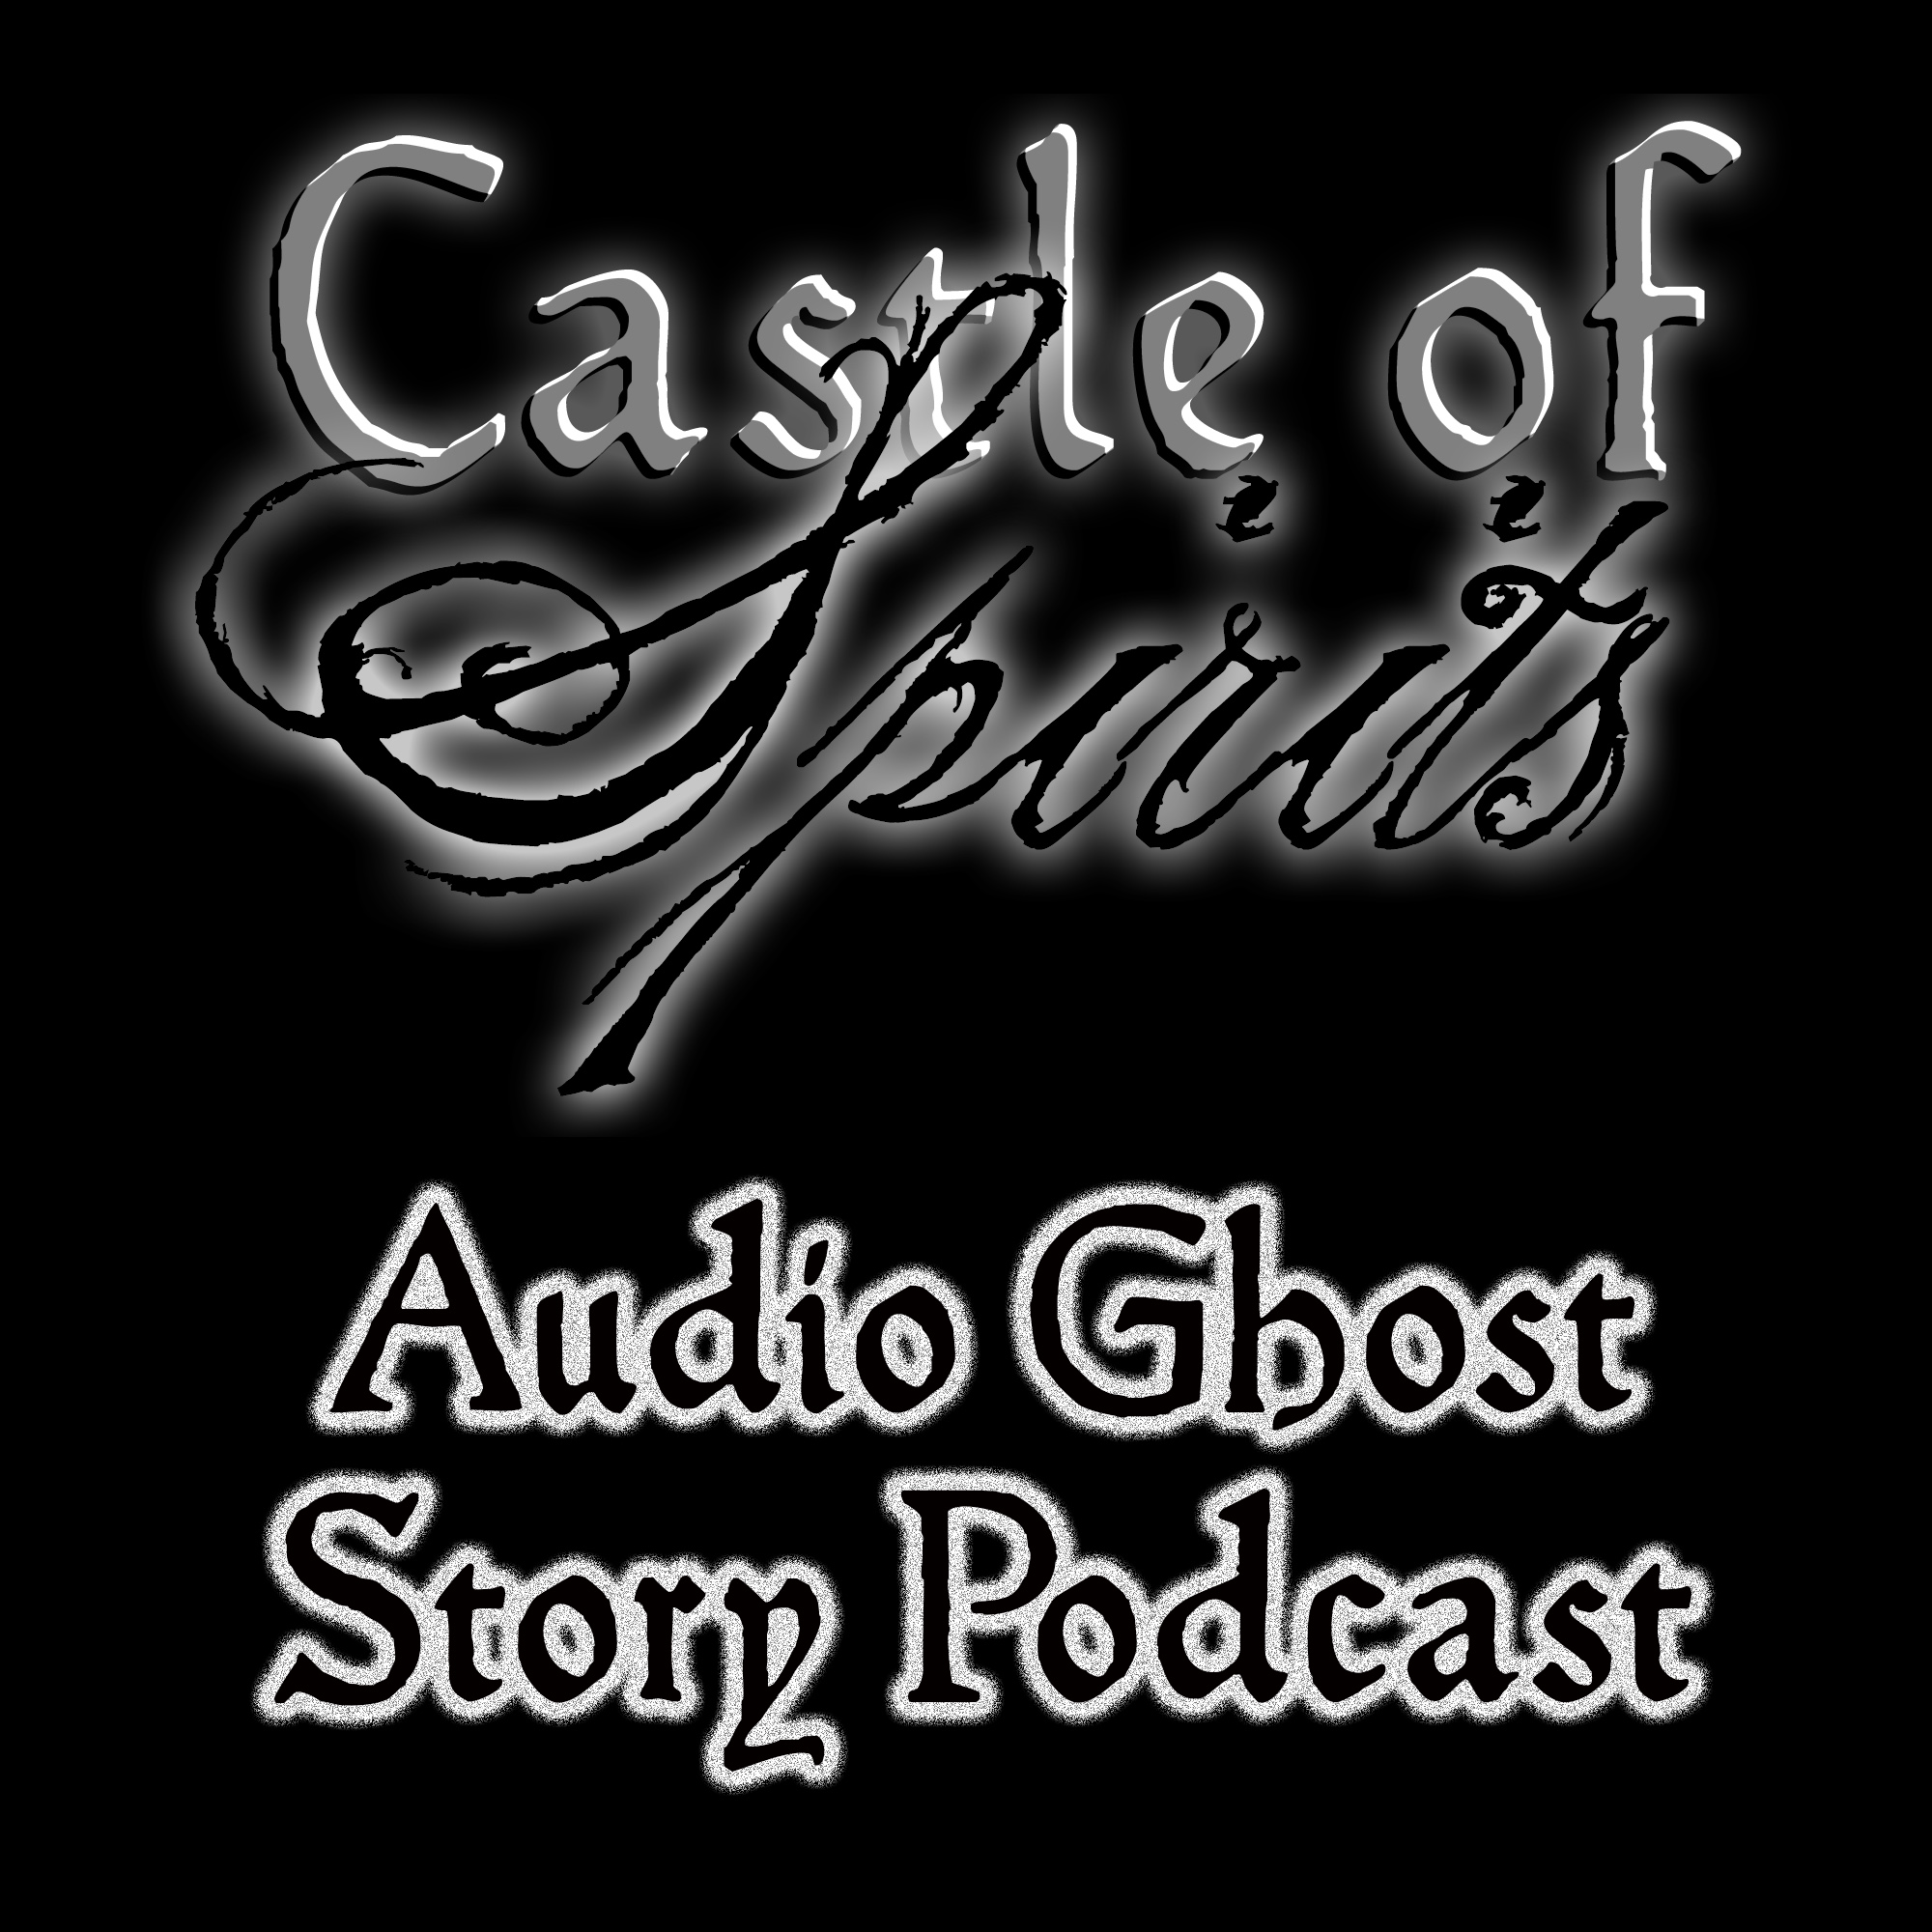 Castle of Spirits Audio Ghost Stories